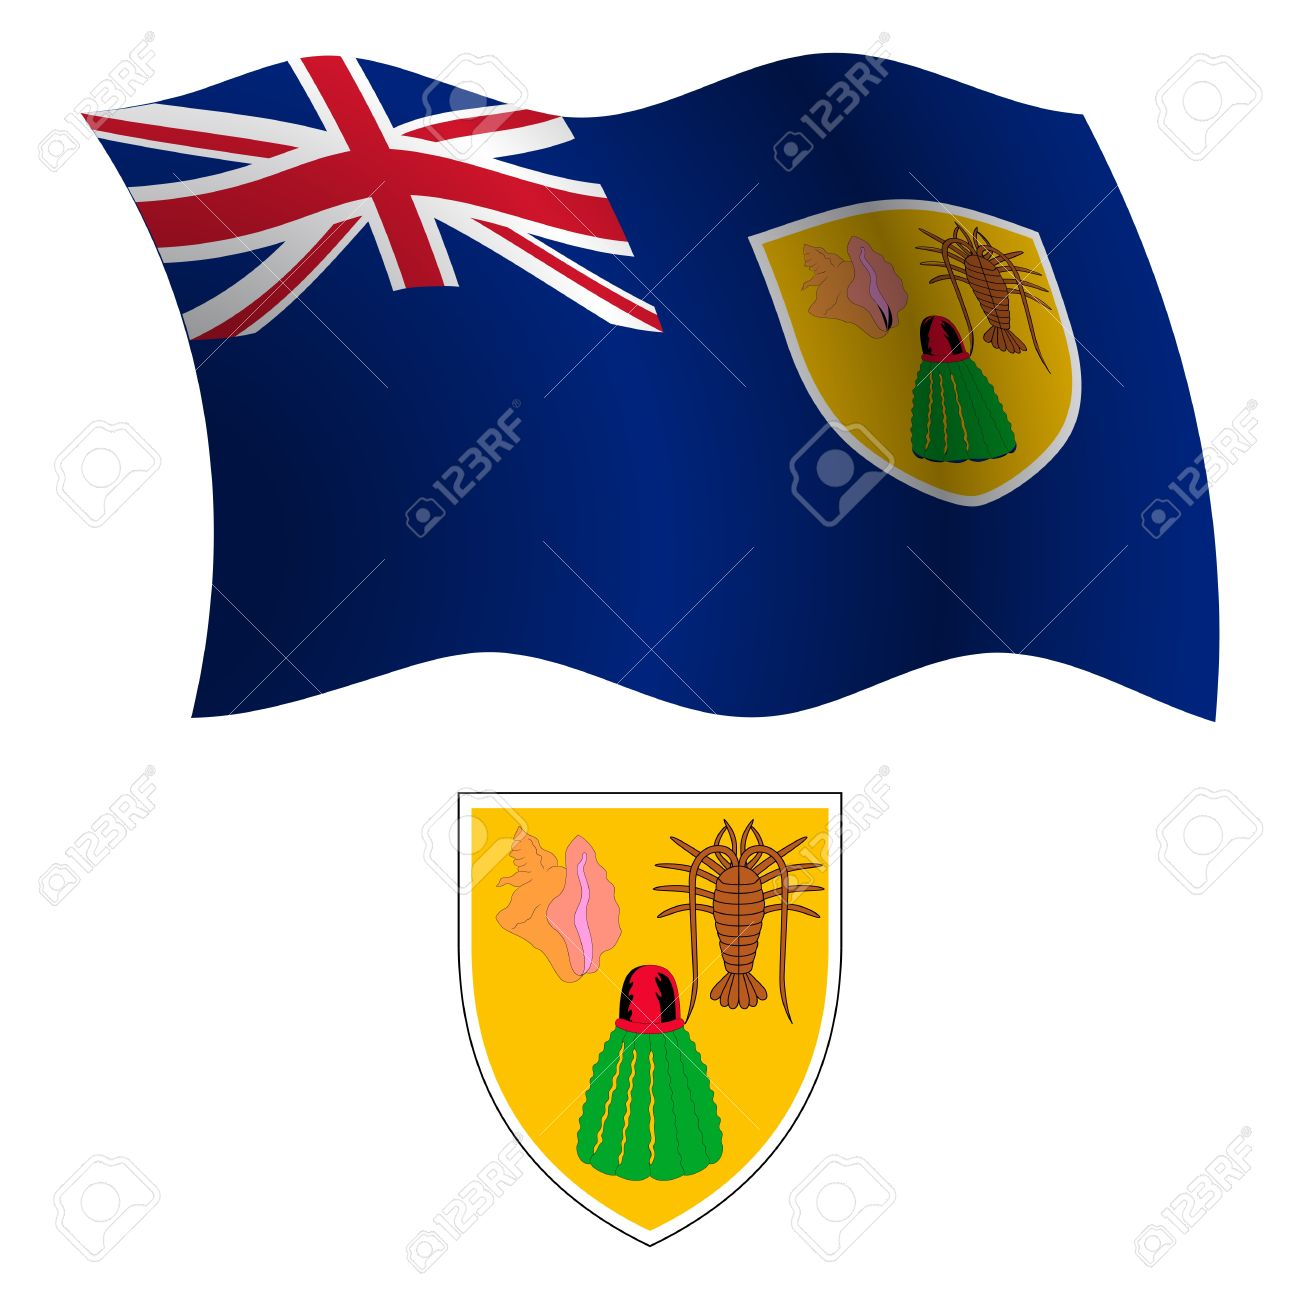 Clip Art Turks and Caicos.